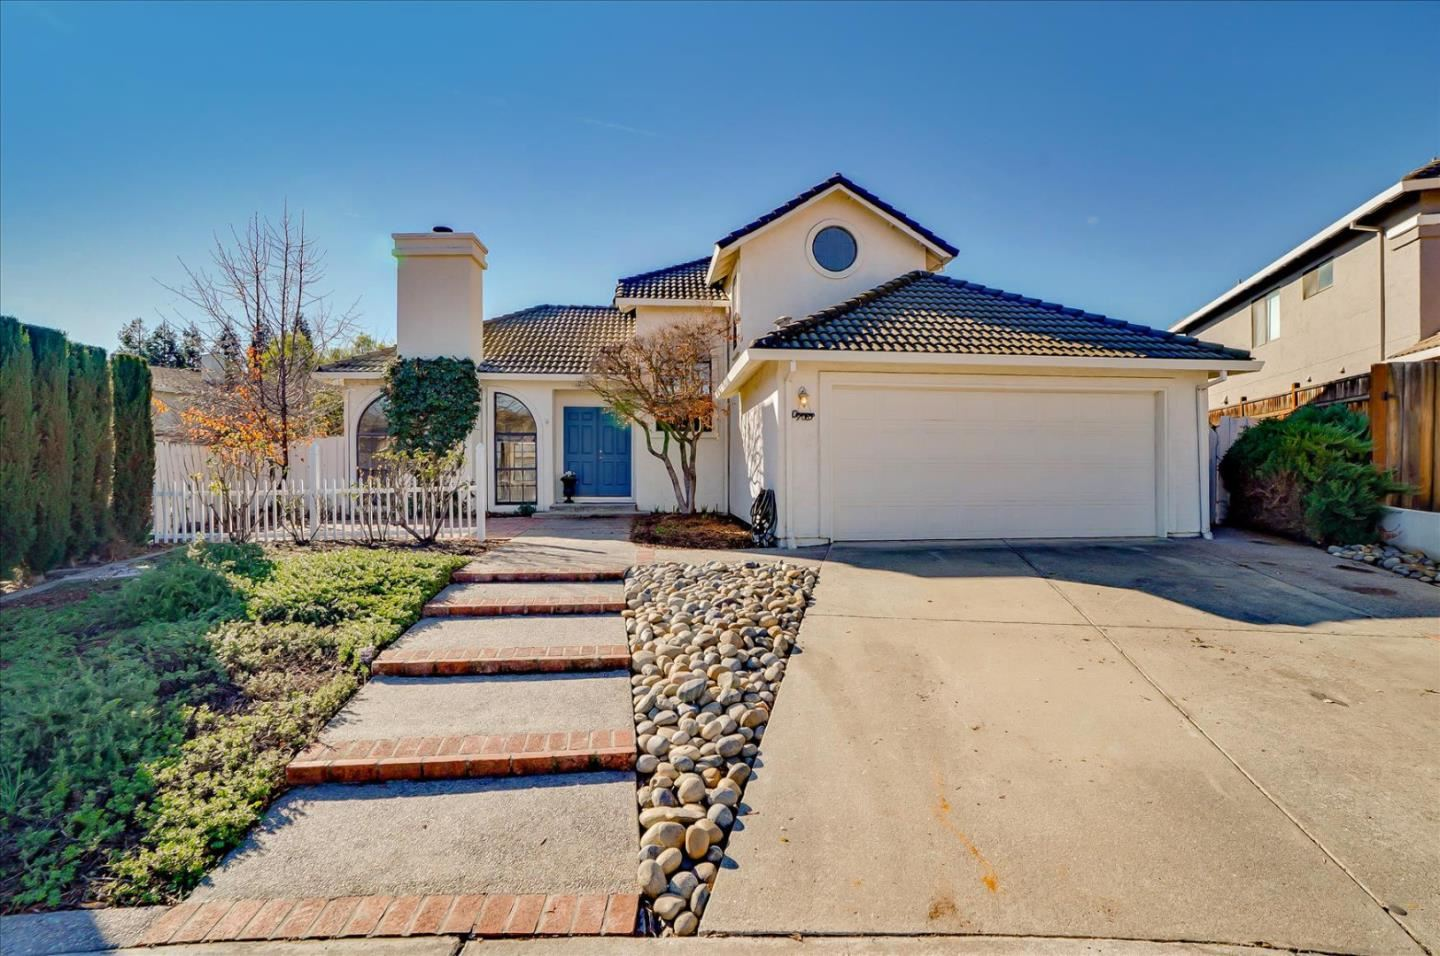 Photo for 9085 Guaymas CT, GILROY, CA 95020 (MLS # ML81824322)